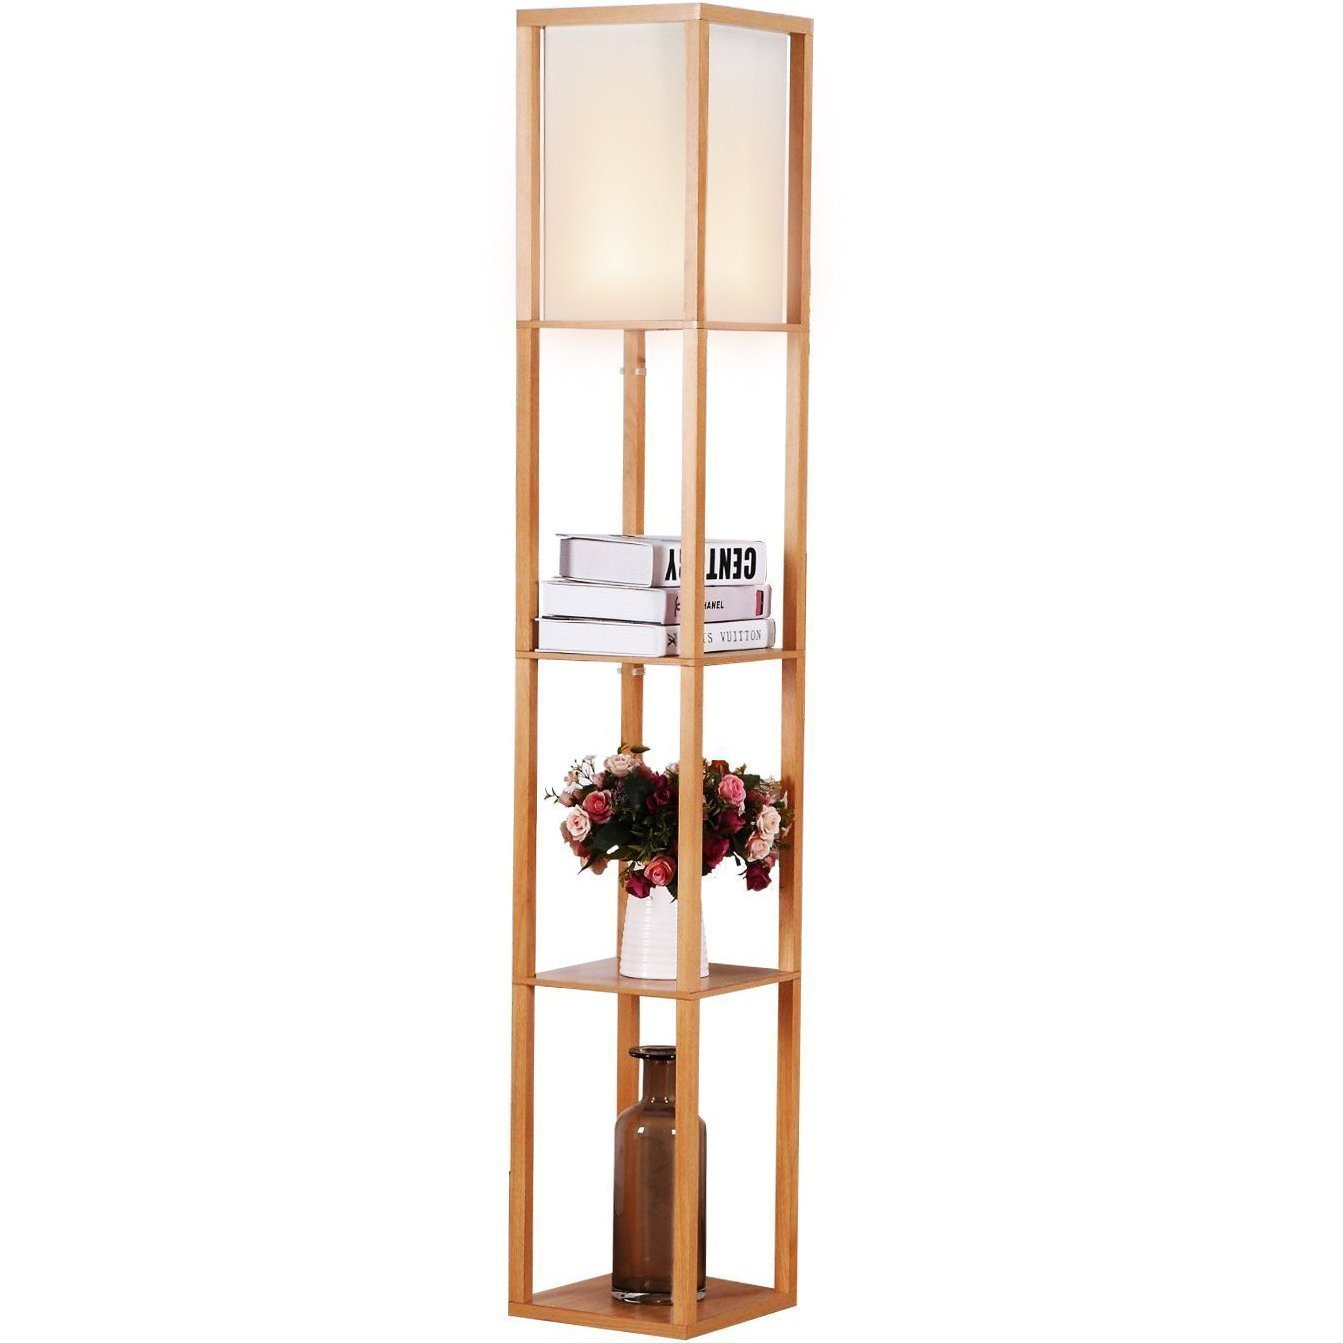 Brightech Maxwell - LED Shelf Floor Lamp - Modern Standing Light for Living Rooms & Bedrooms - Asian Wooden Frame with Open Box Display Shelves - Natural Wood